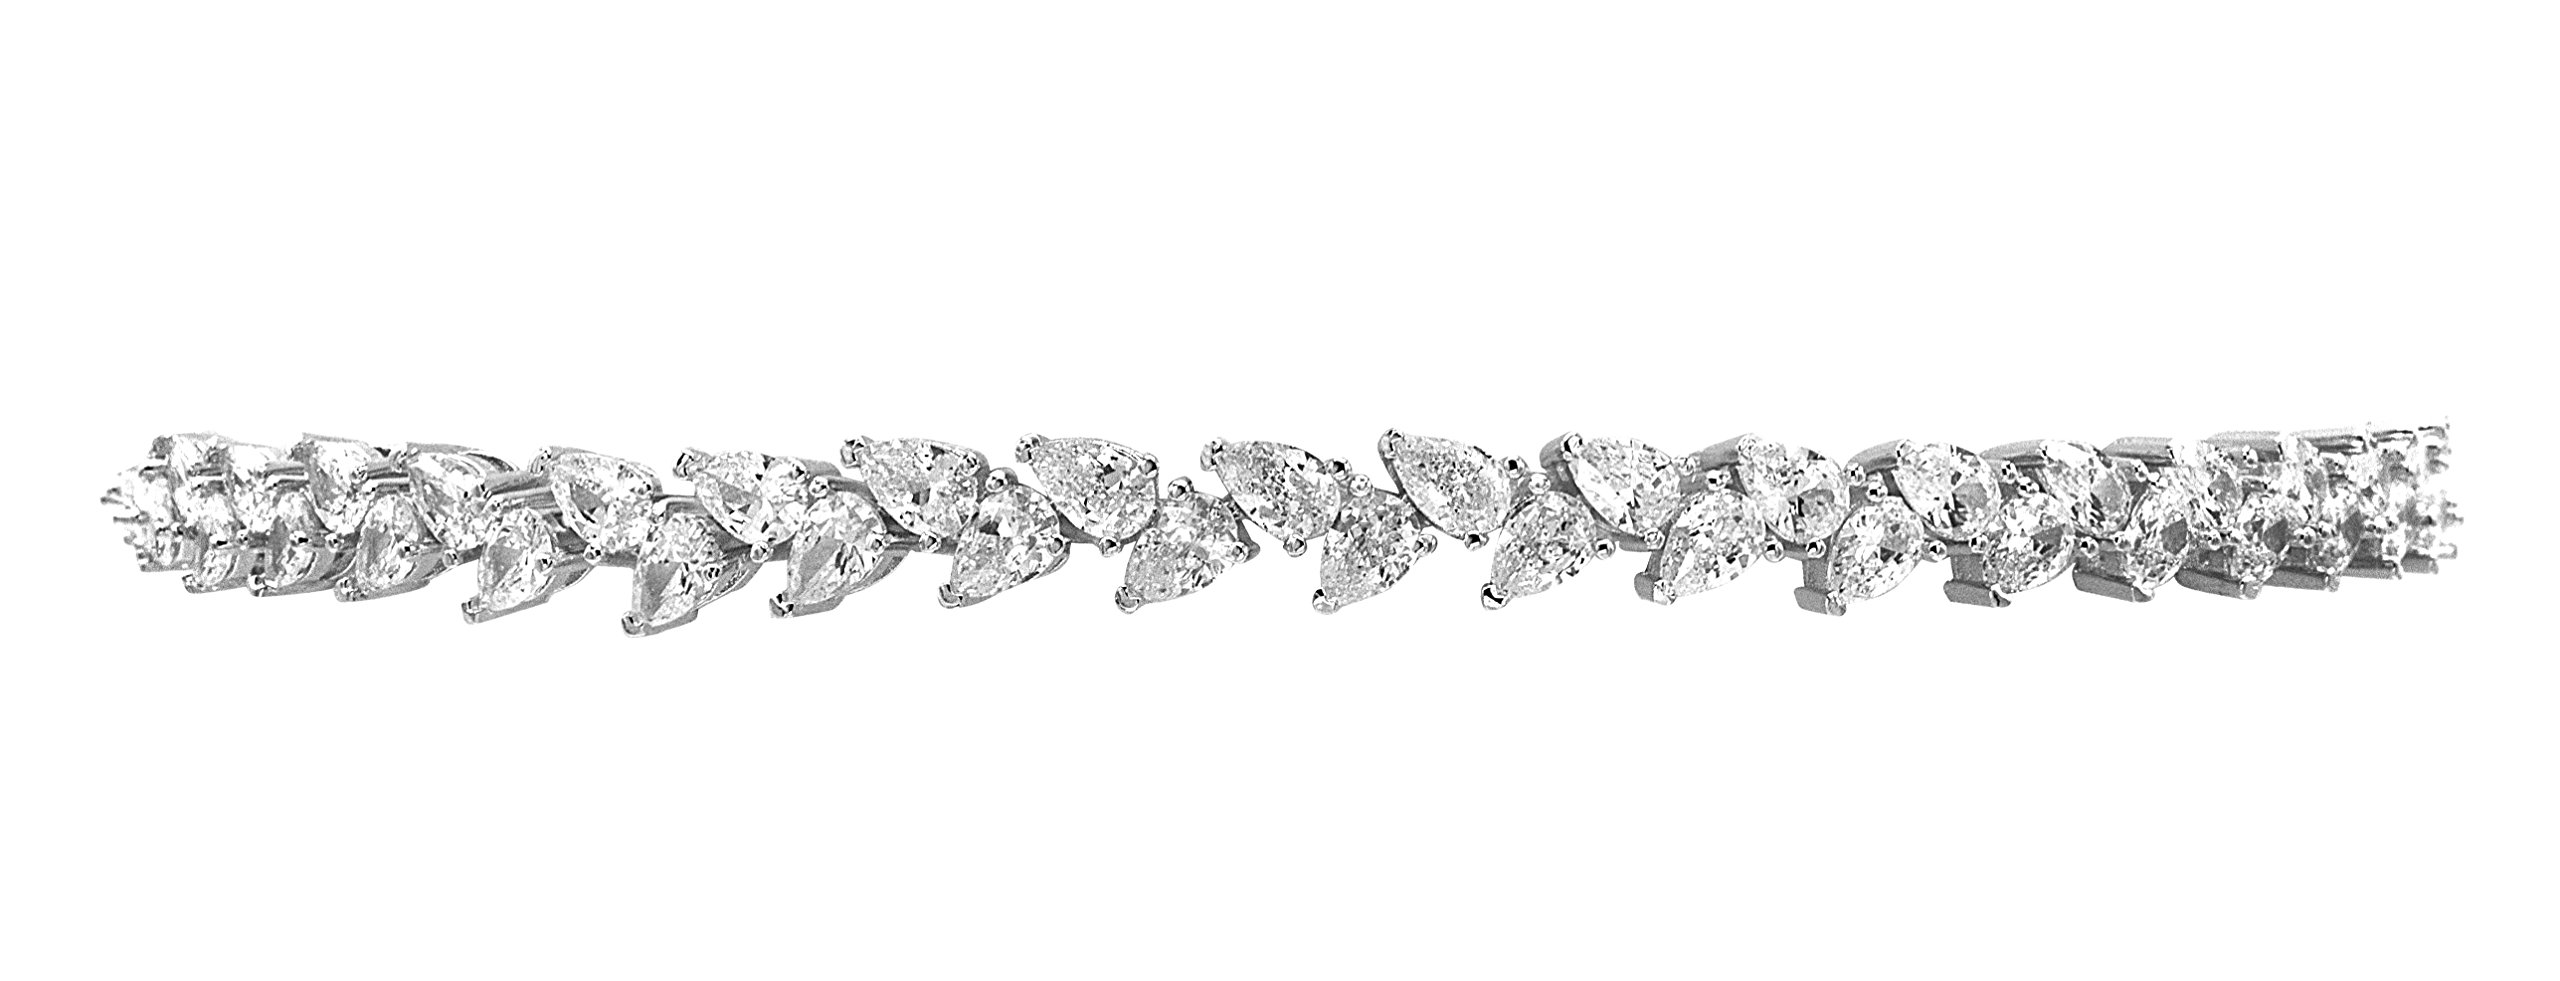 Samfa Style Pear Shaped Diamond Choker Necklace with Extension (silver-plated-brass)